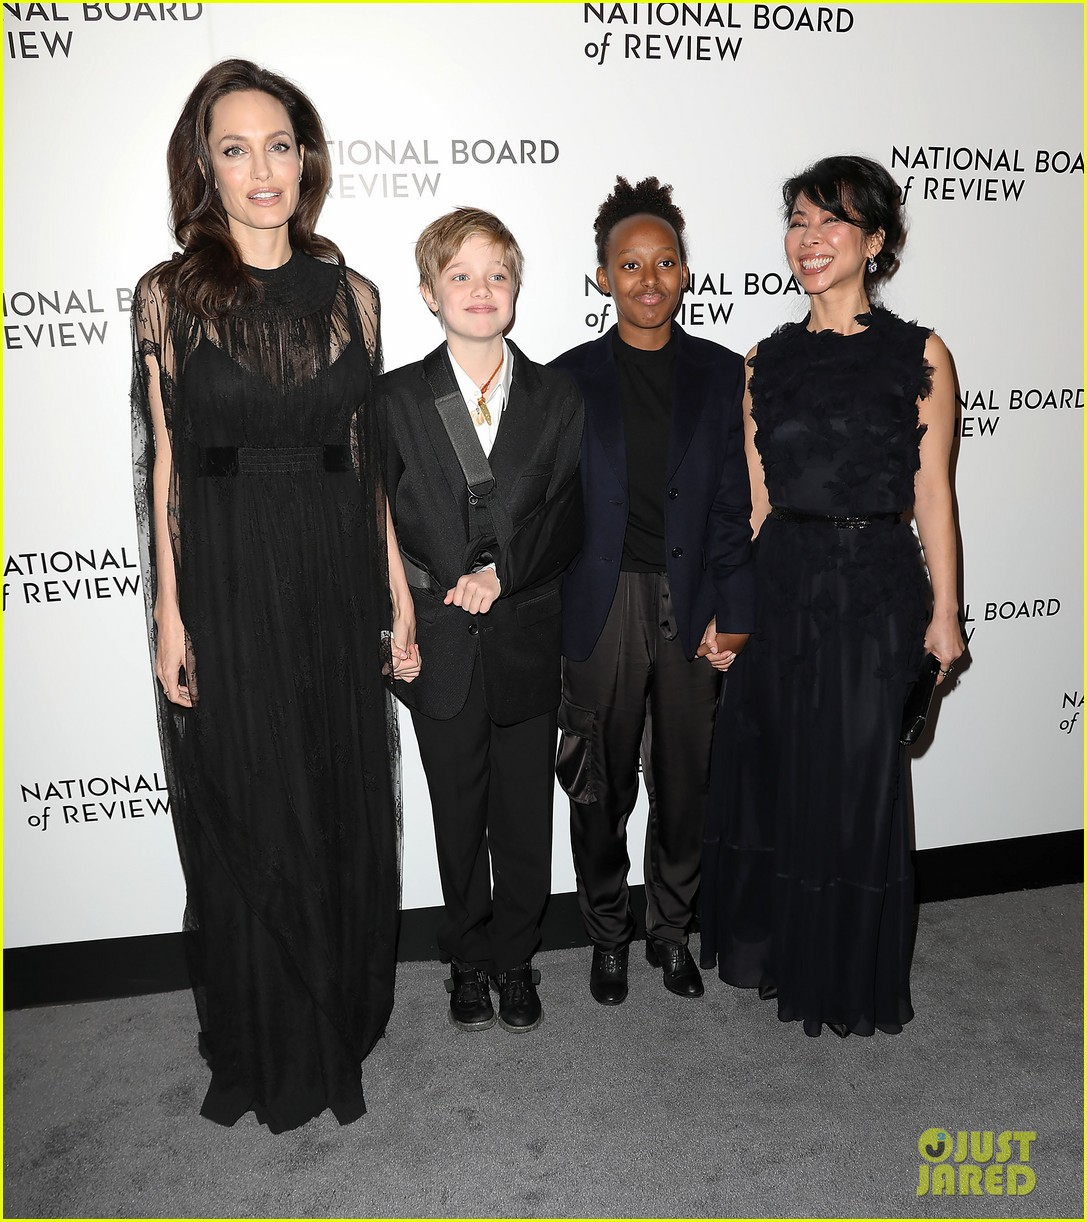 Angelina Jolie's publicist, or kid?